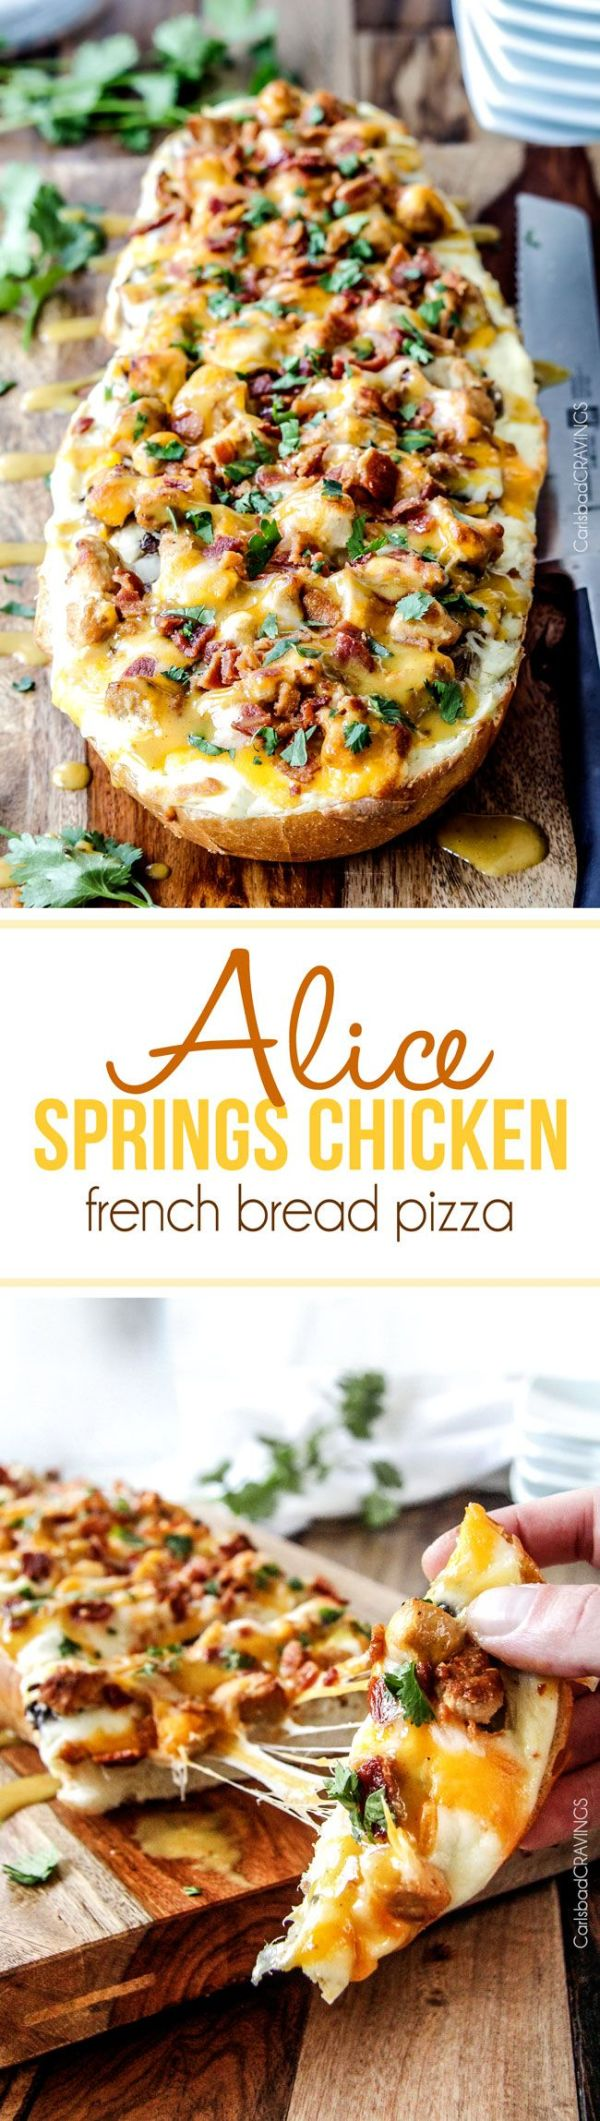 1000+ ideas about Stuffed French Bread on Pinterest ...